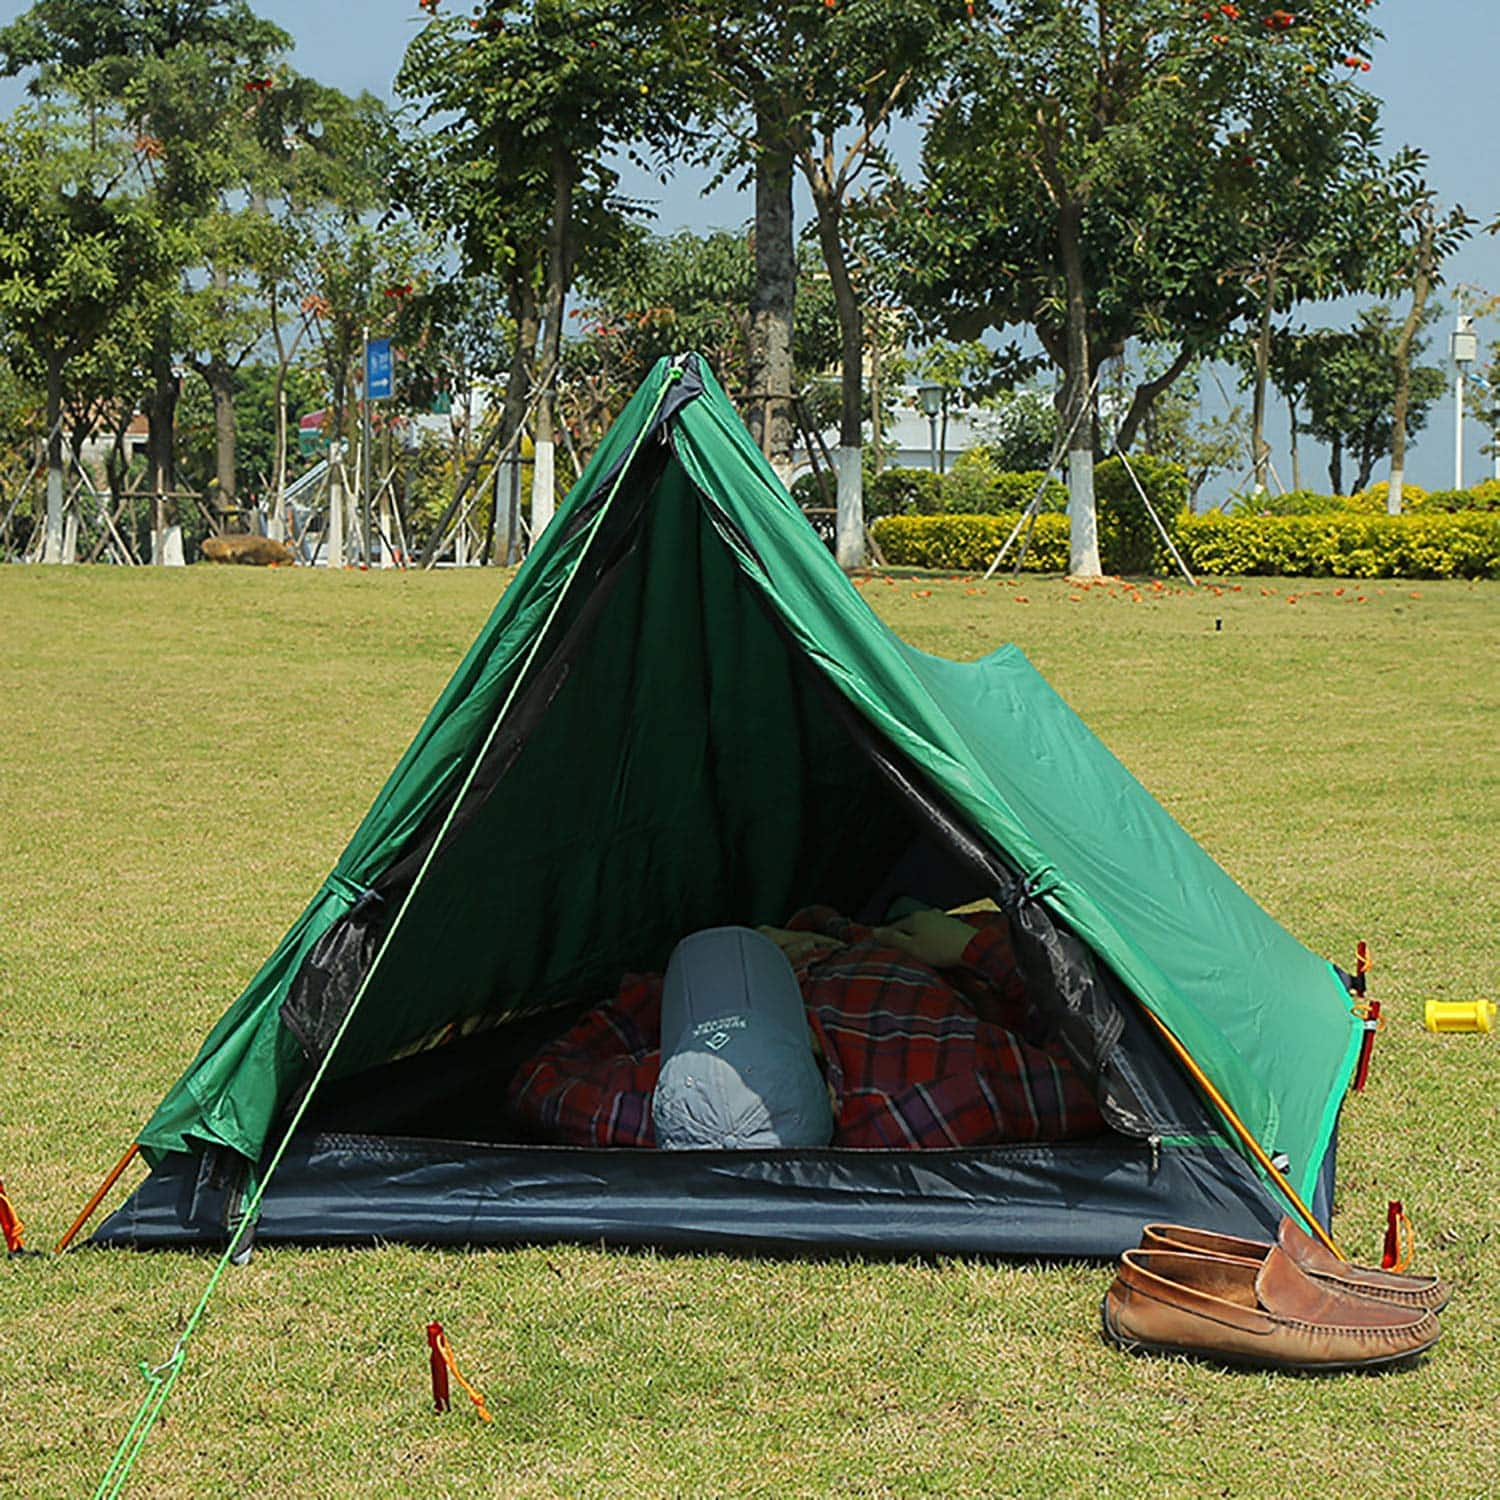 Flyzy tower tent - photo 3